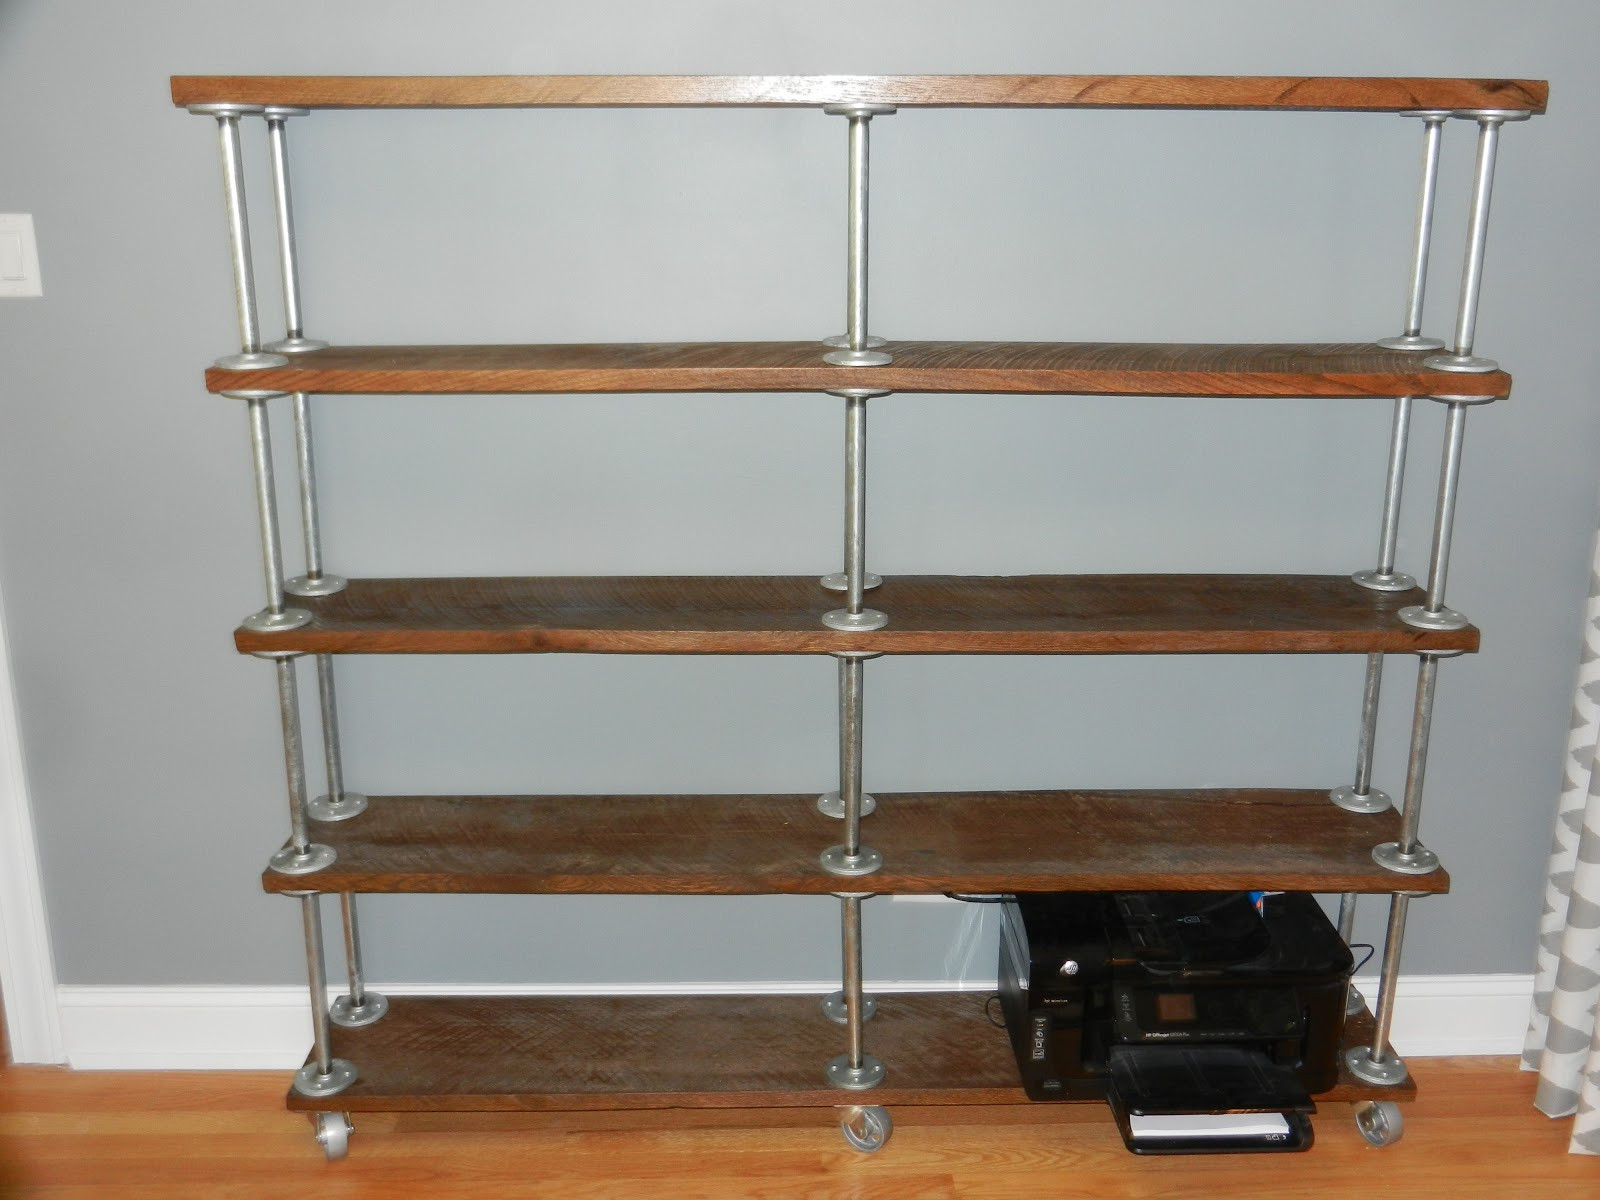 Best ideas about DIY Industrial Shelves . Save or Pin DIY Industrial Bookshelf Now.